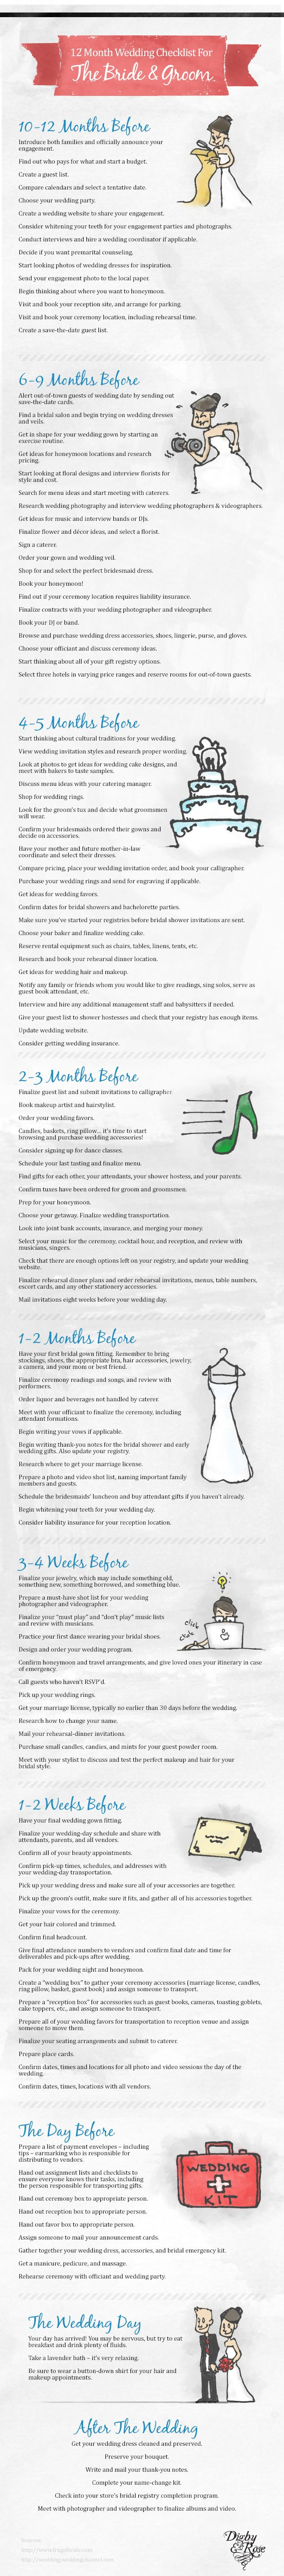 12 month wedding planning checklist